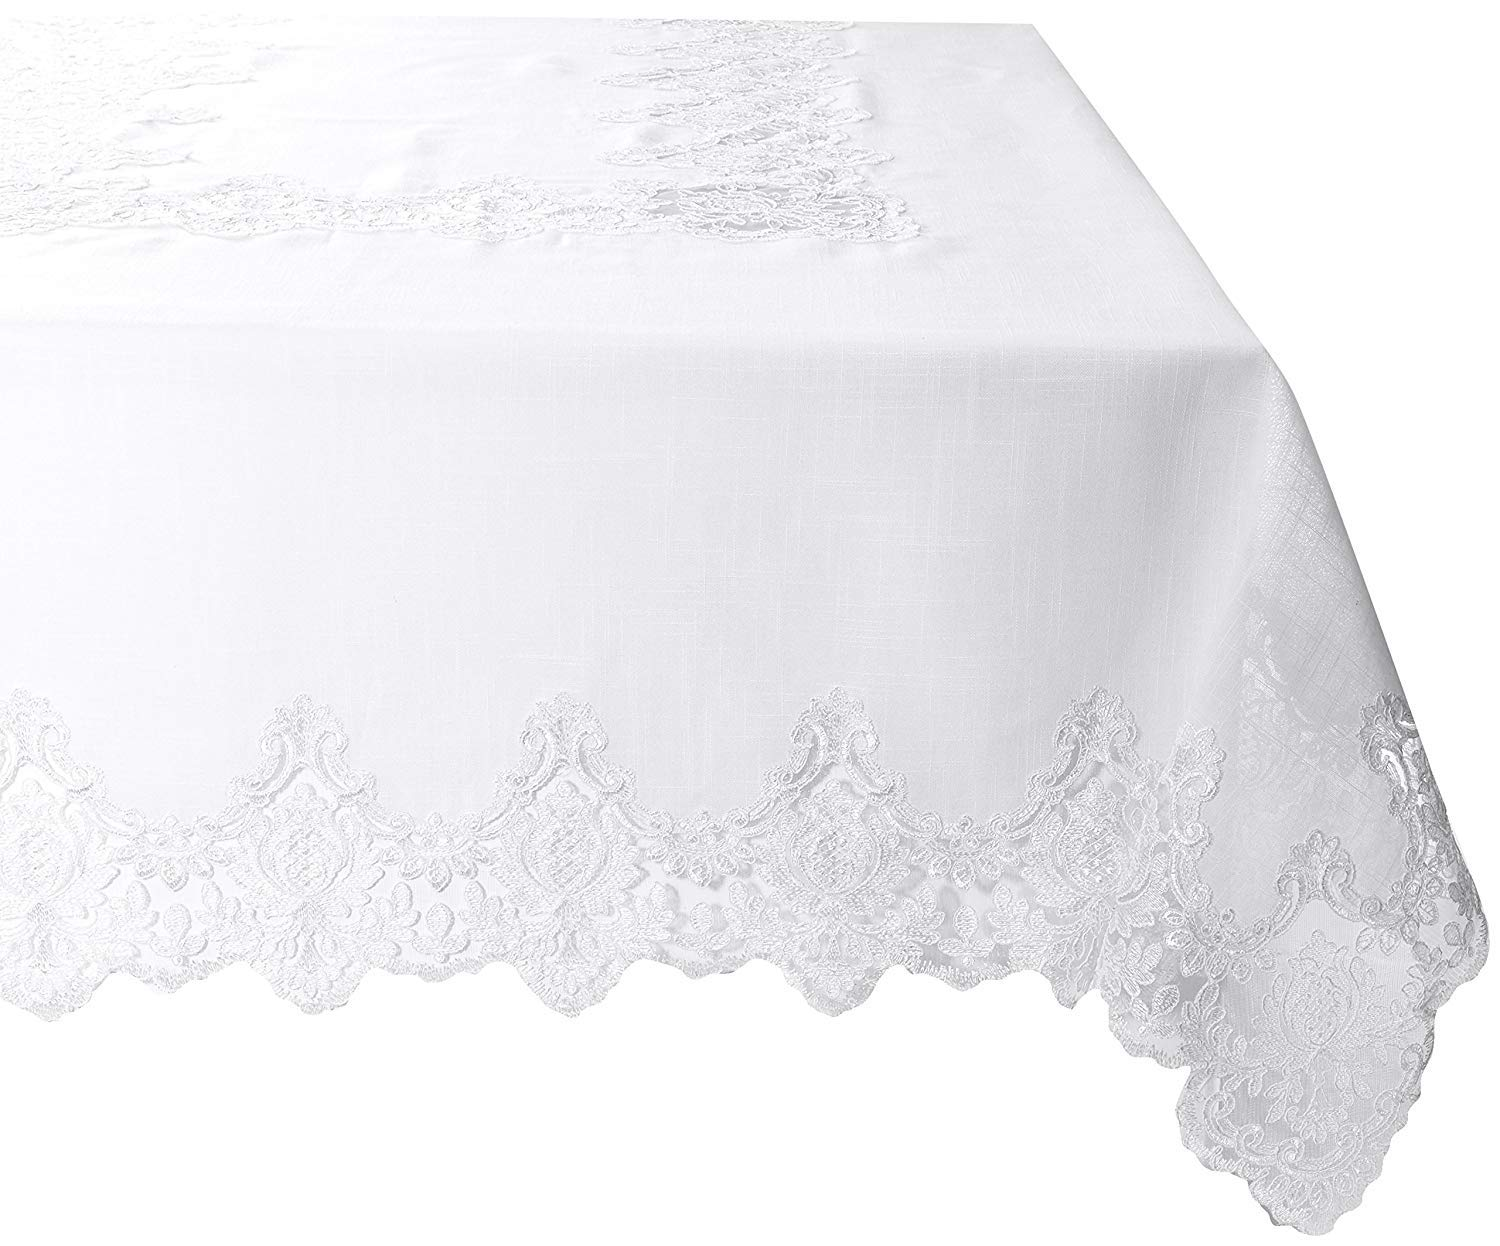 Violet Linen Embroidered Vintage Lace Design Oblong//Rectangle Tablecloth 70 x 140 White IMPERIAL WH-7